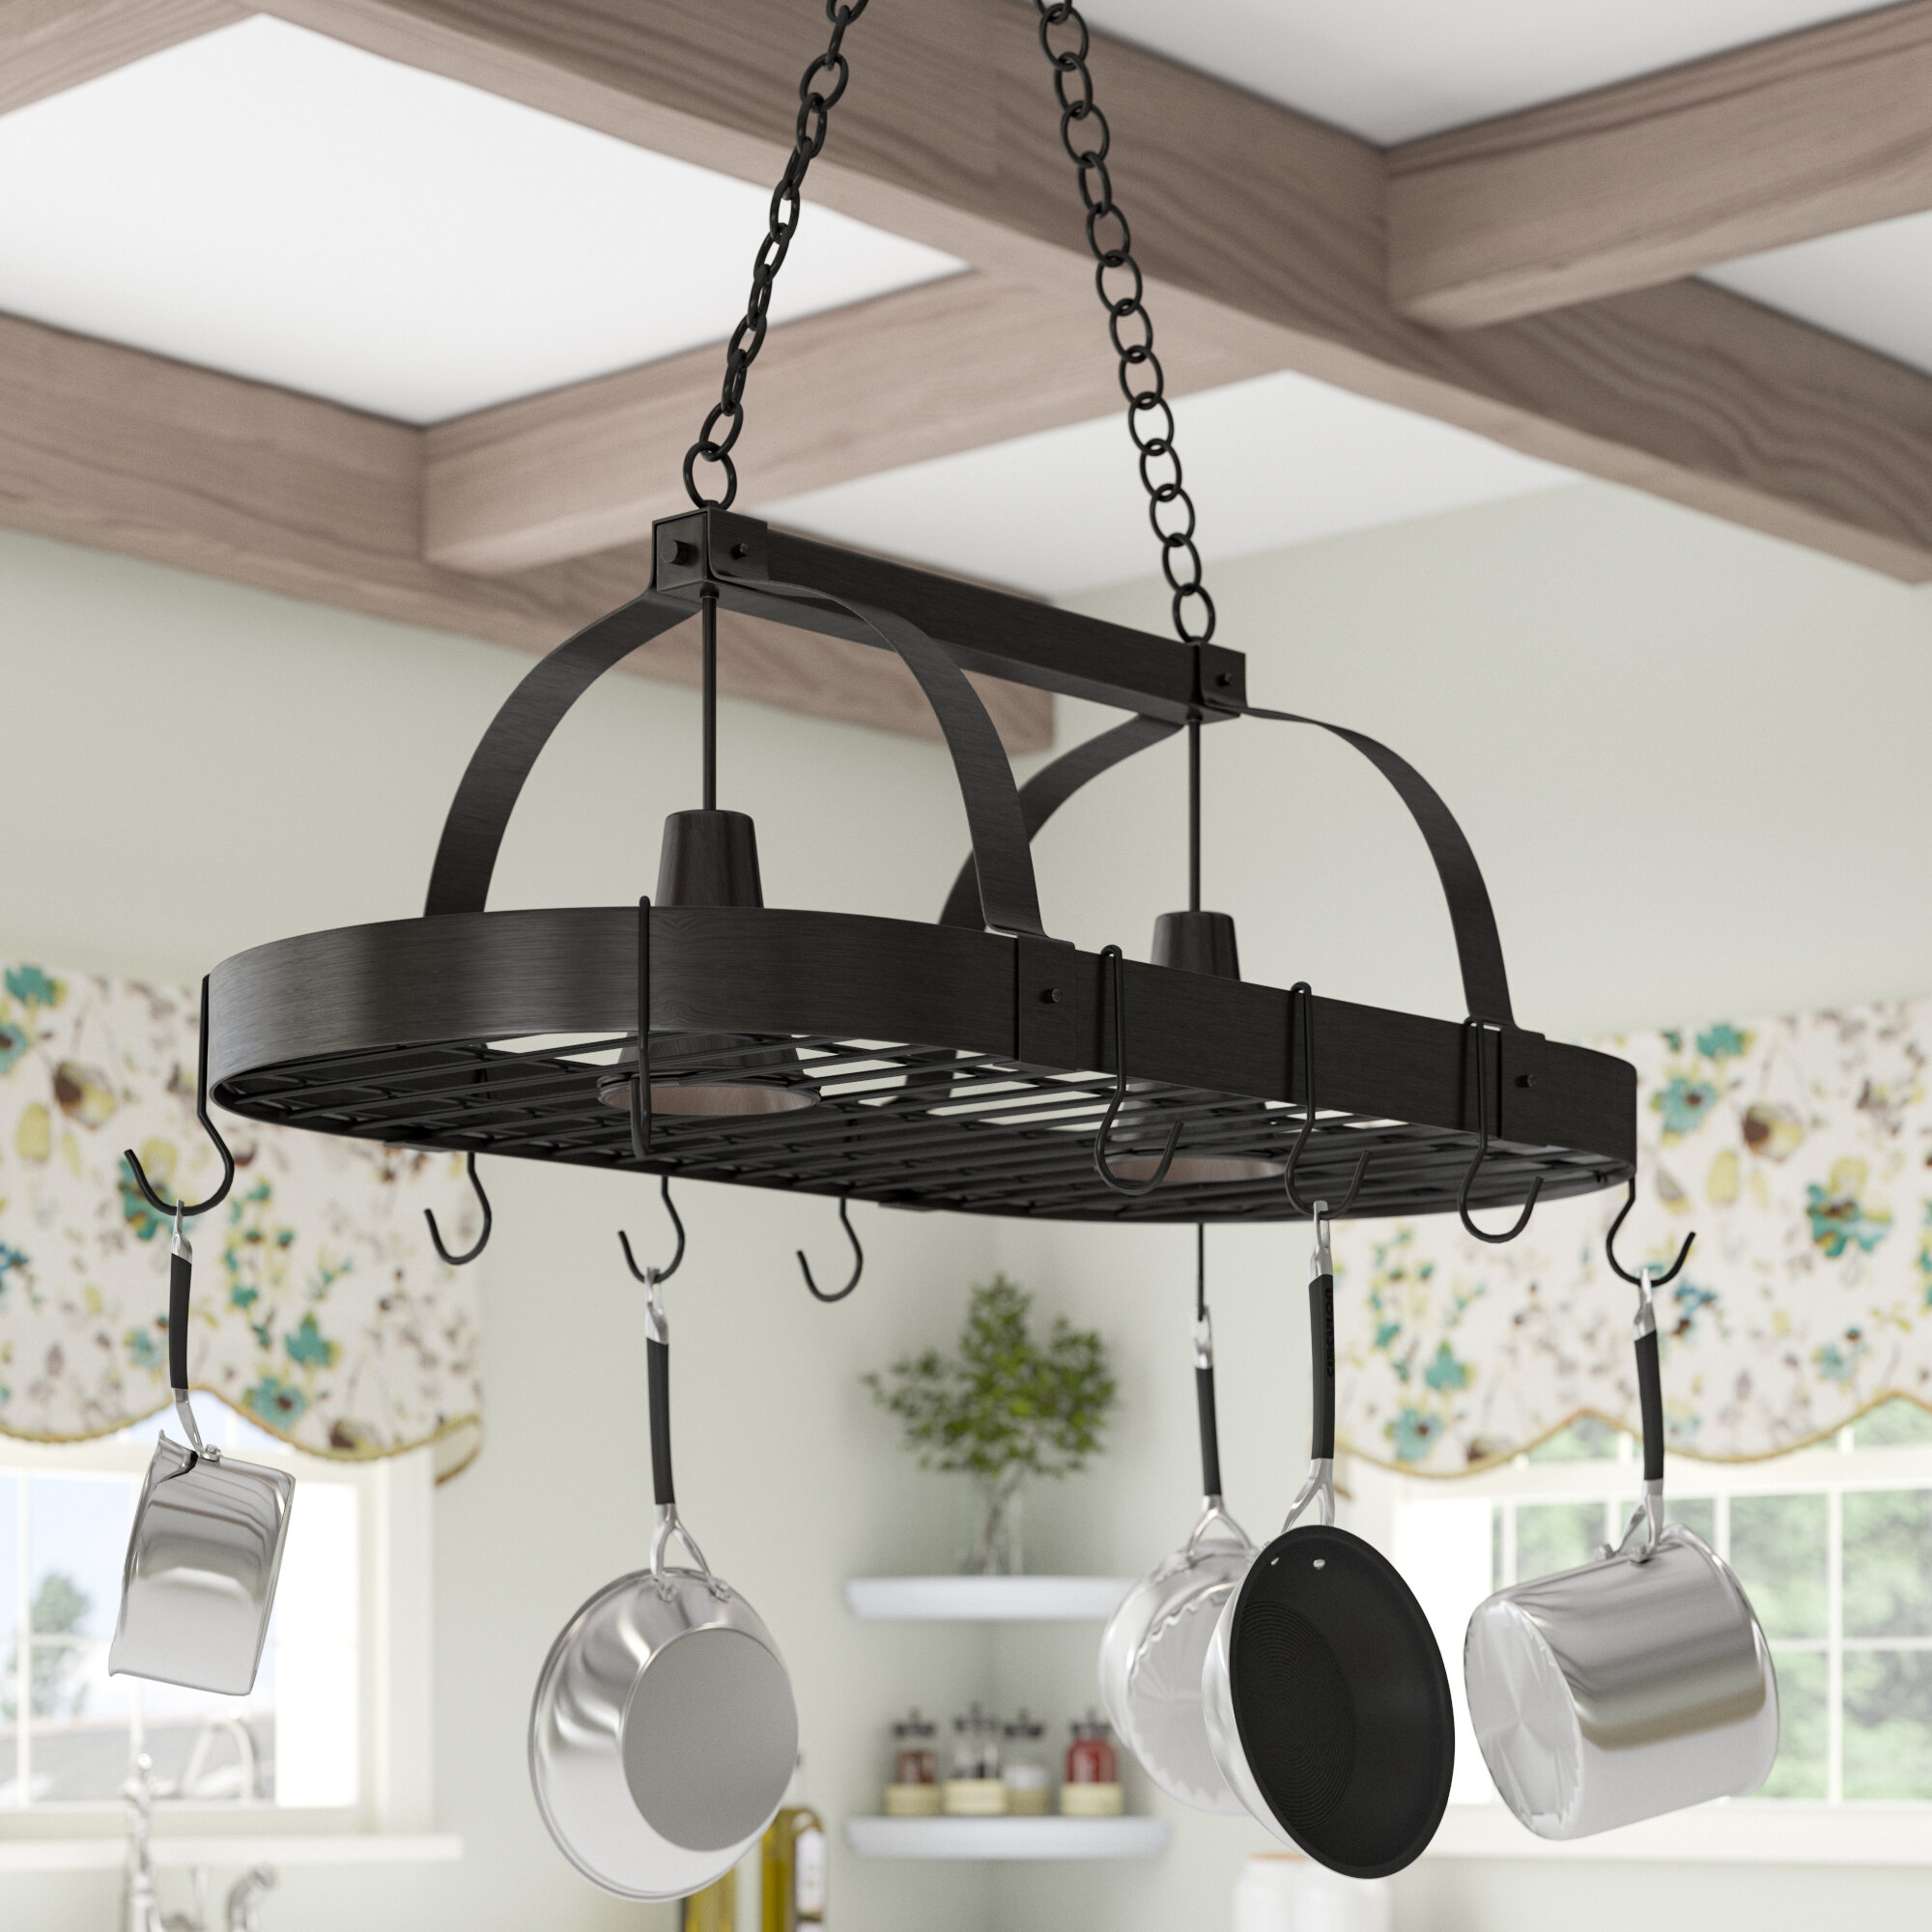 Darby home co 2 light kitchen pot rack reviews wayfair